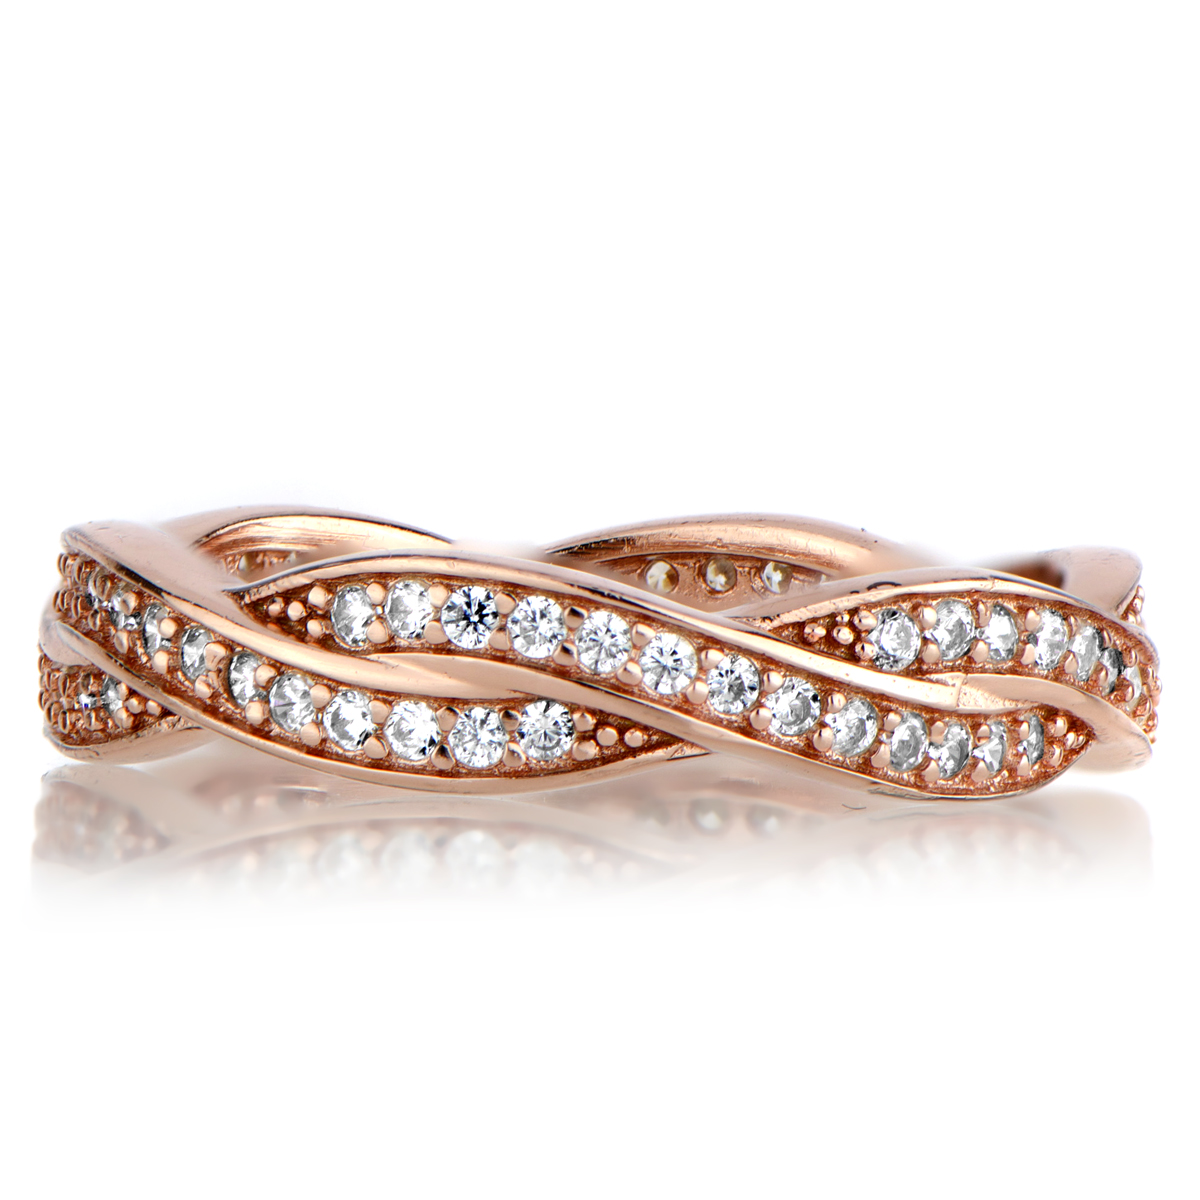 rose gold twisted band rose gold wedding rings Roll Off Image to Close Zoom Window